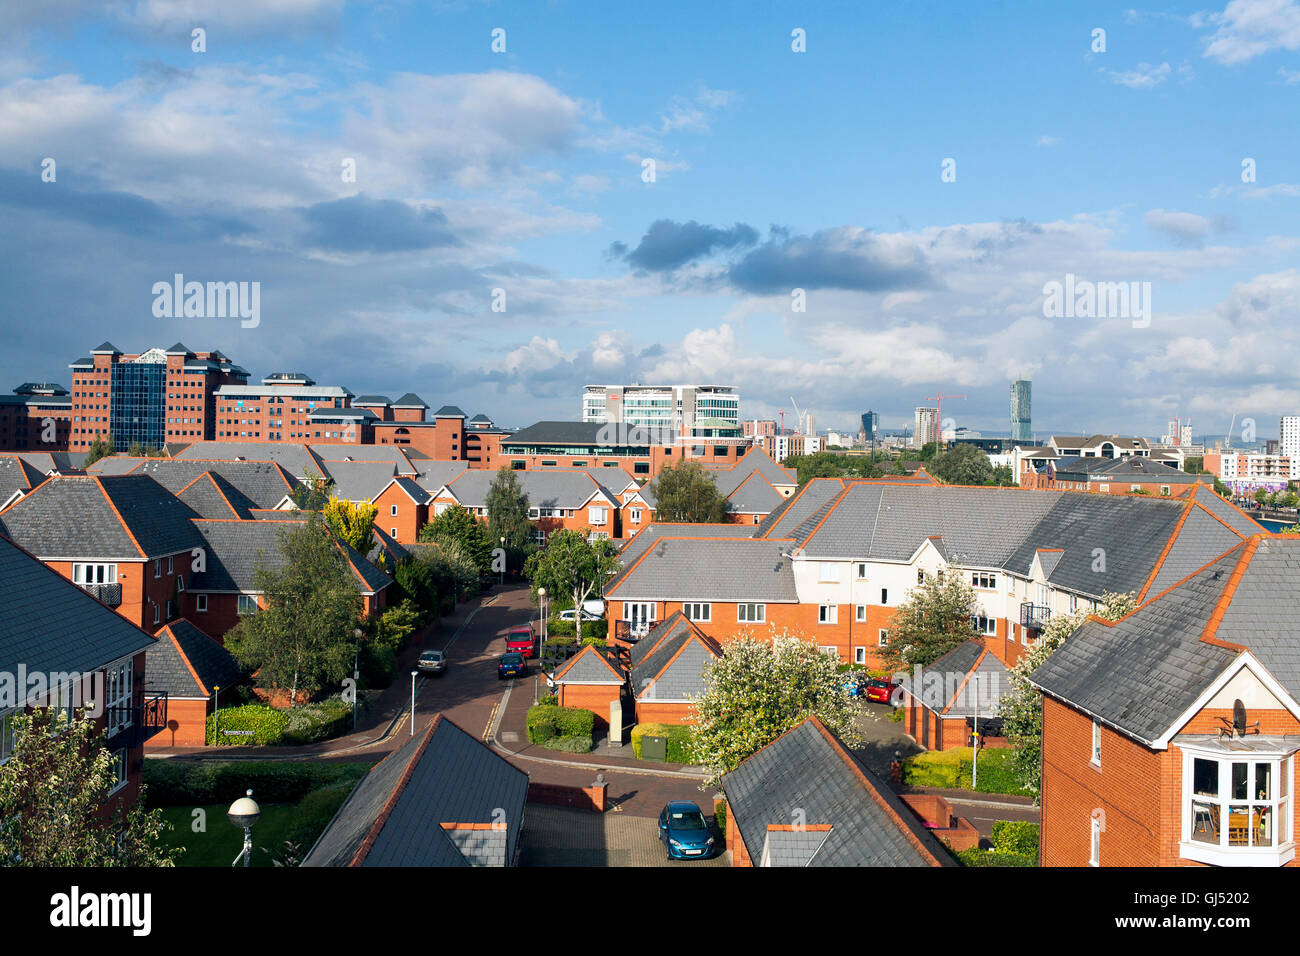 Salford Quays Looking Towards Manchrster City Centre - Stock Image